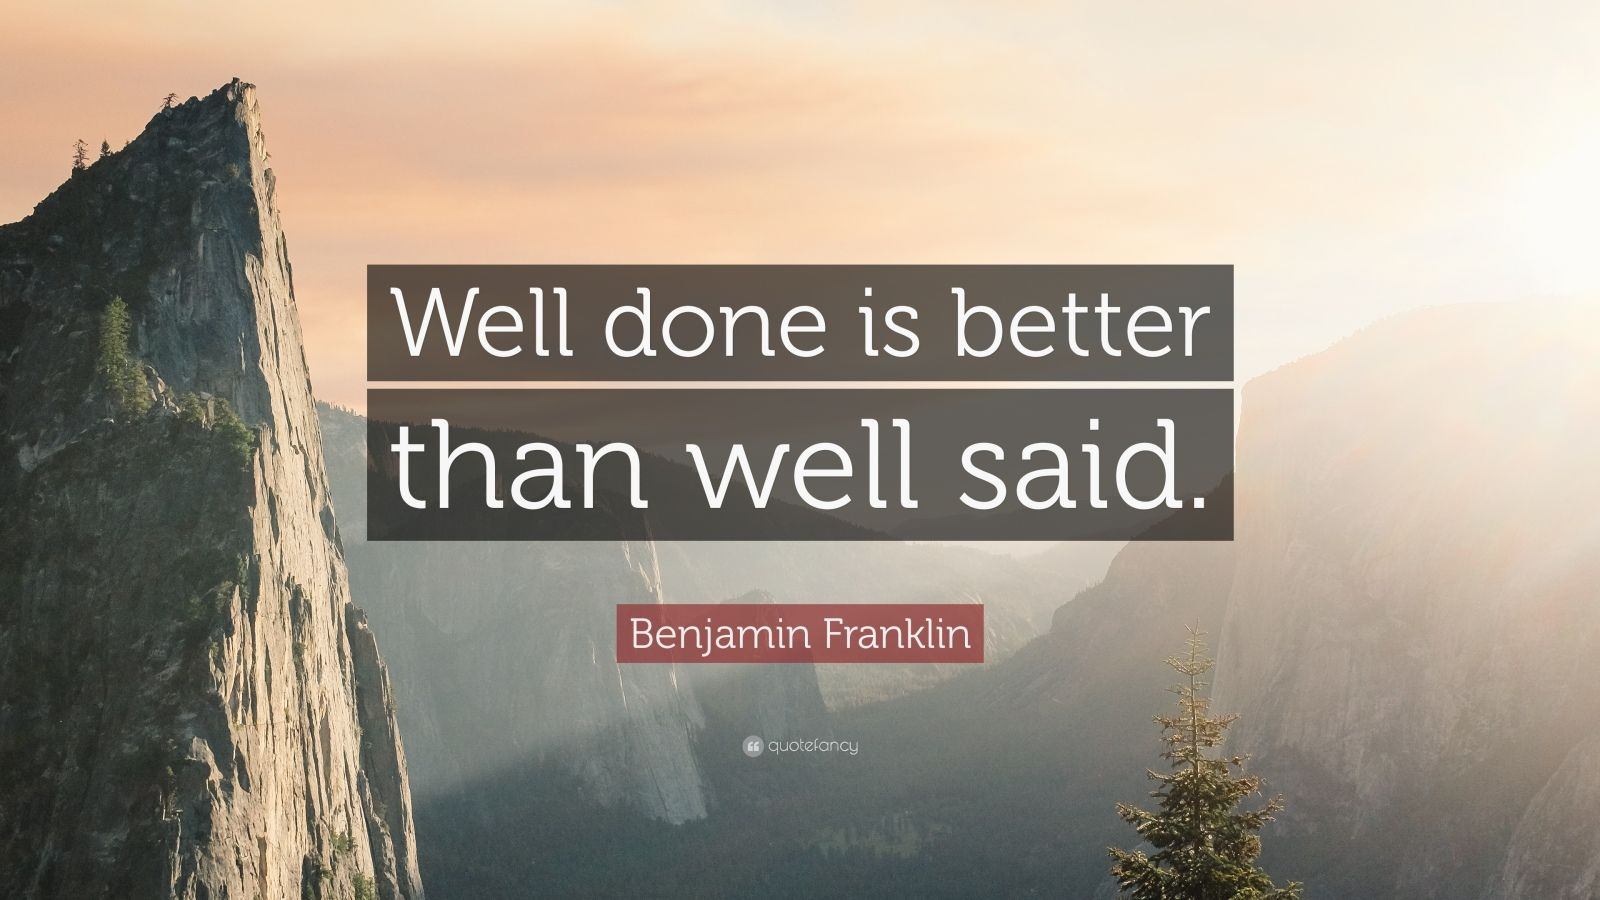 Images Of Inspiring Quotes Wallpaper Benjamin Franklin Quote Well Done Is Better Than Well